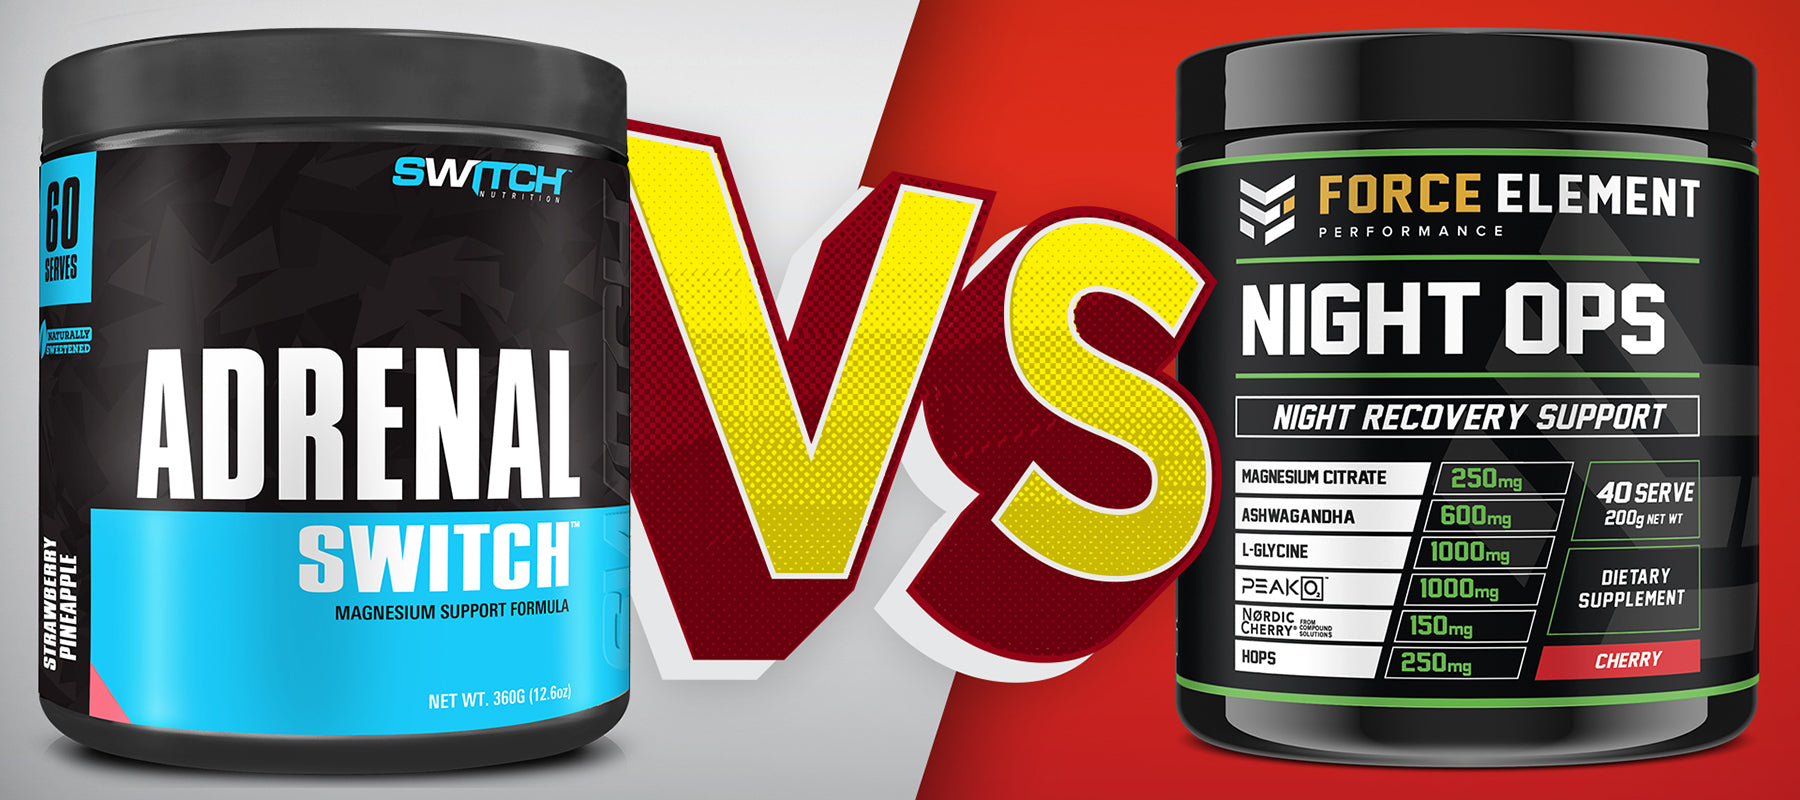 Force Element Performance Night Ops v Switch Nutrition Adrenal Switch | SUPPWARS